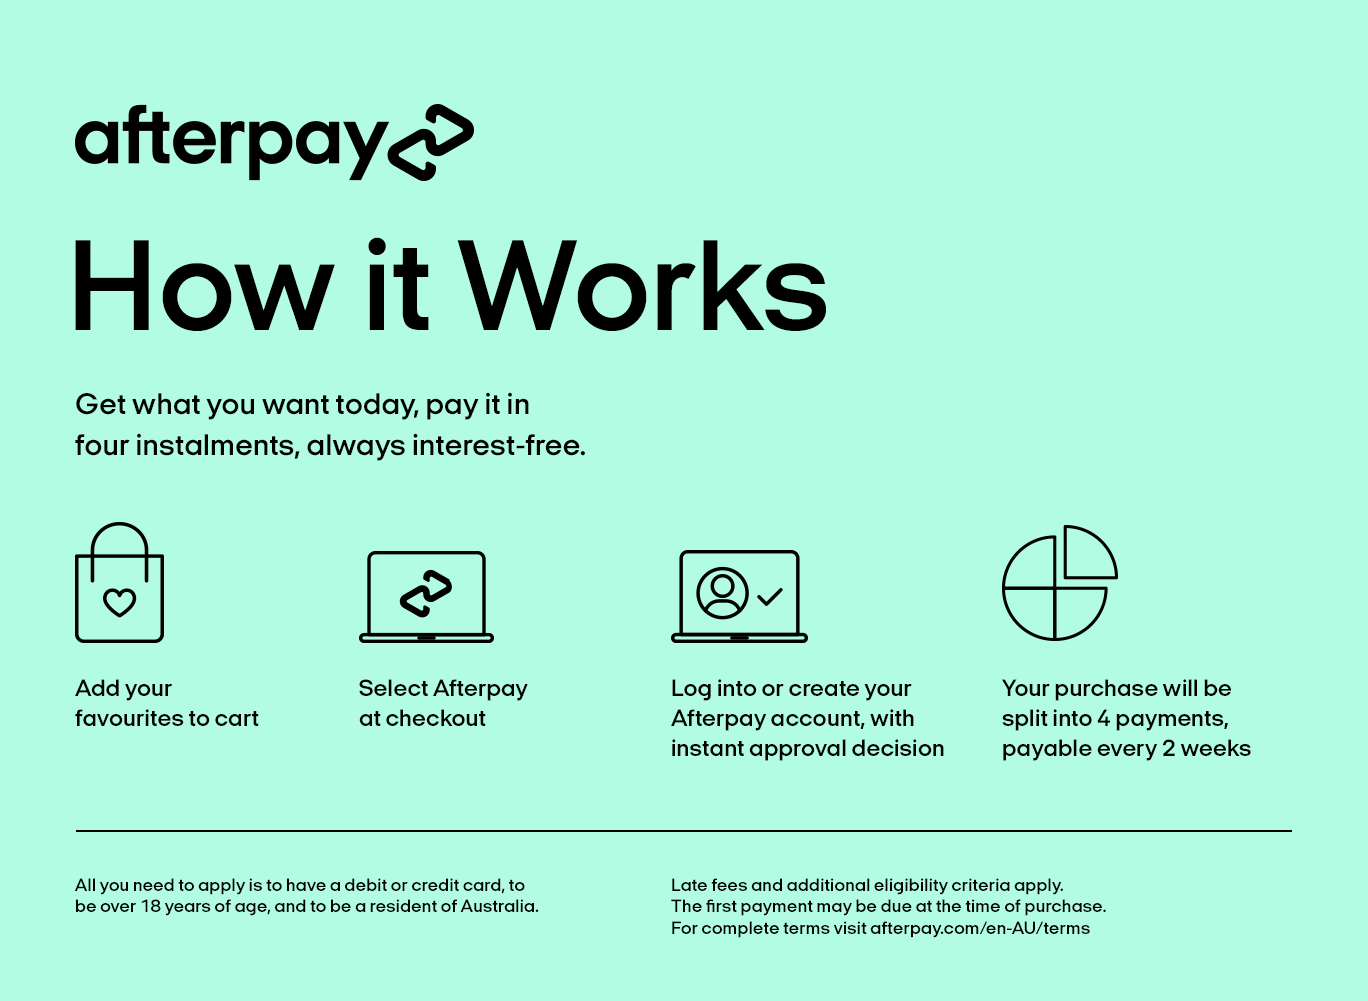 afterpay-au-howitworks-desktop-mint-1x.png